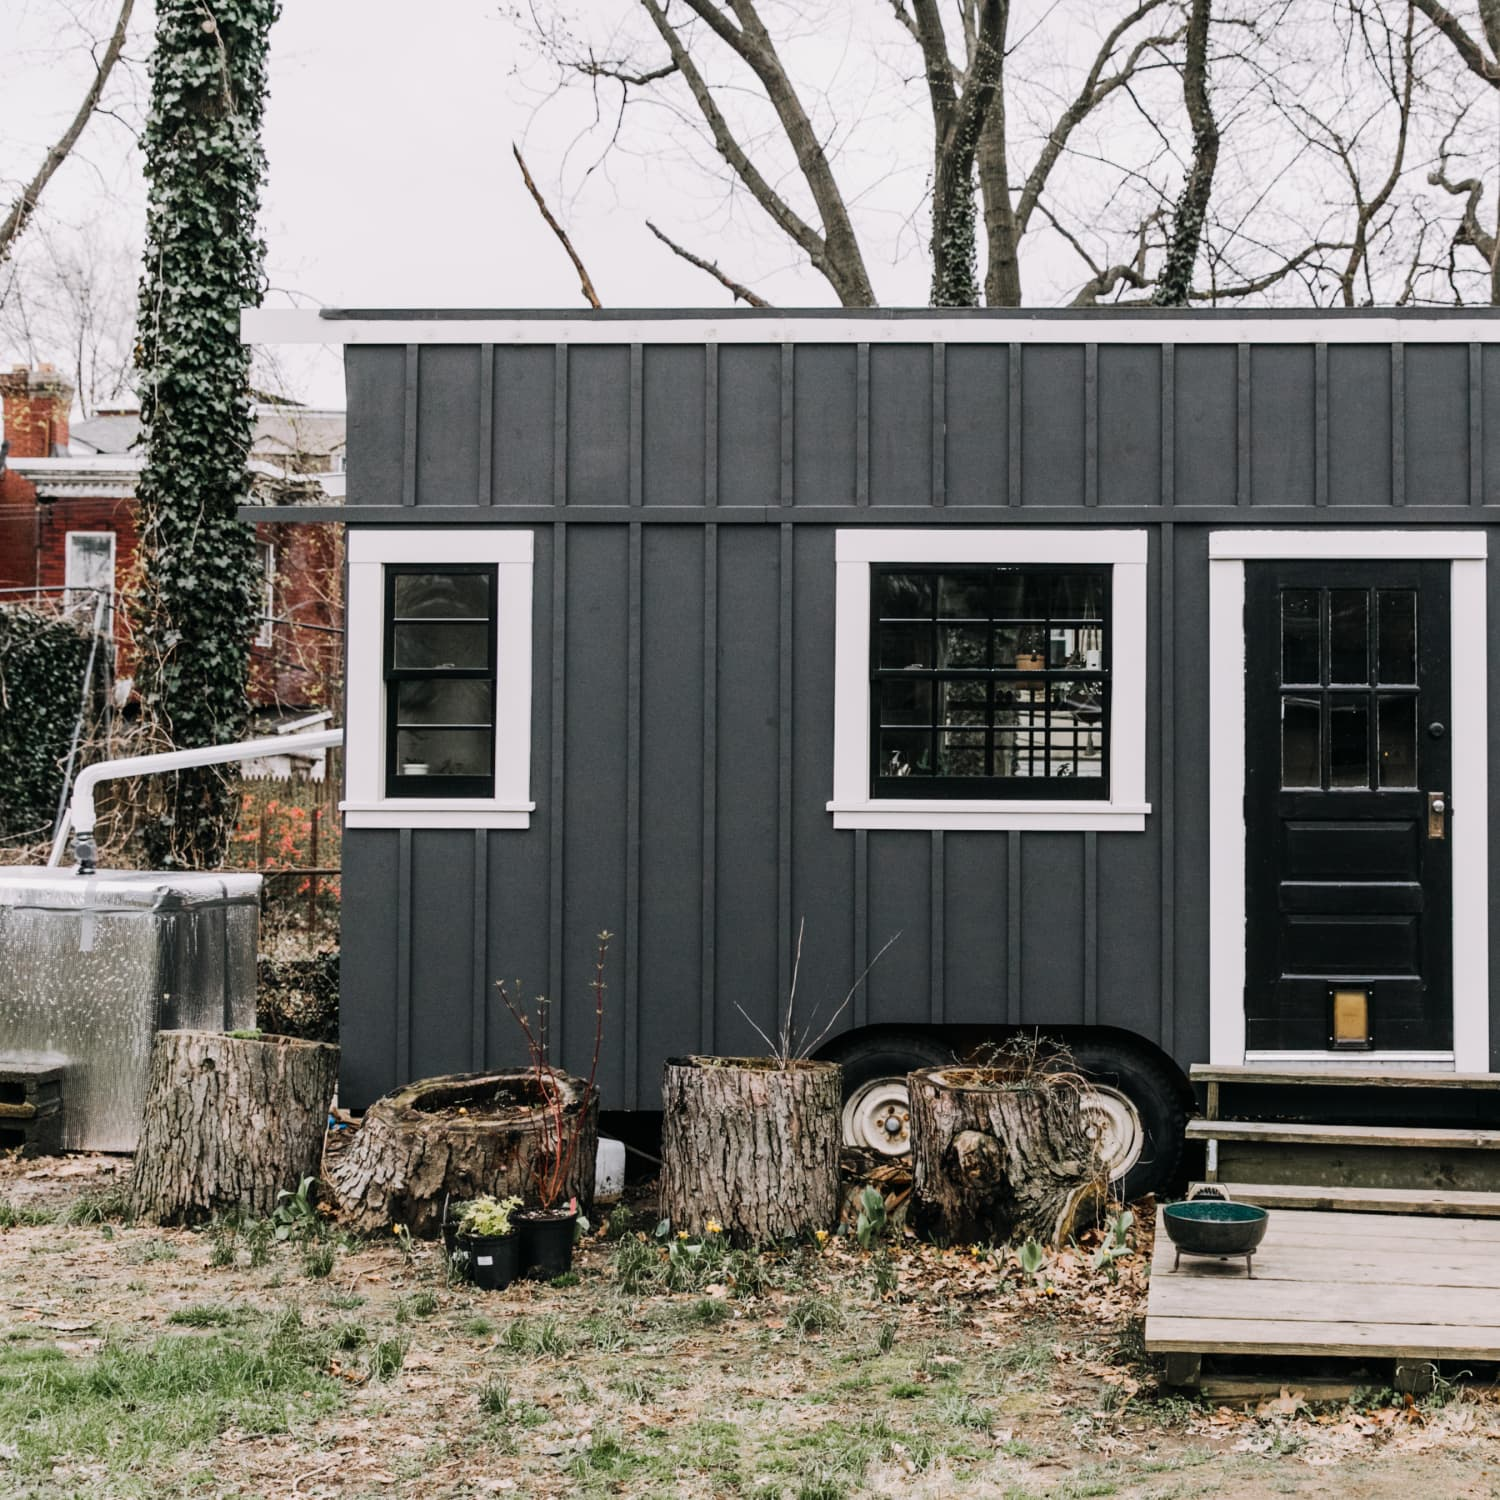 Tiny Houses Cost Expenses - Pros and Cons | Apartment Therapy